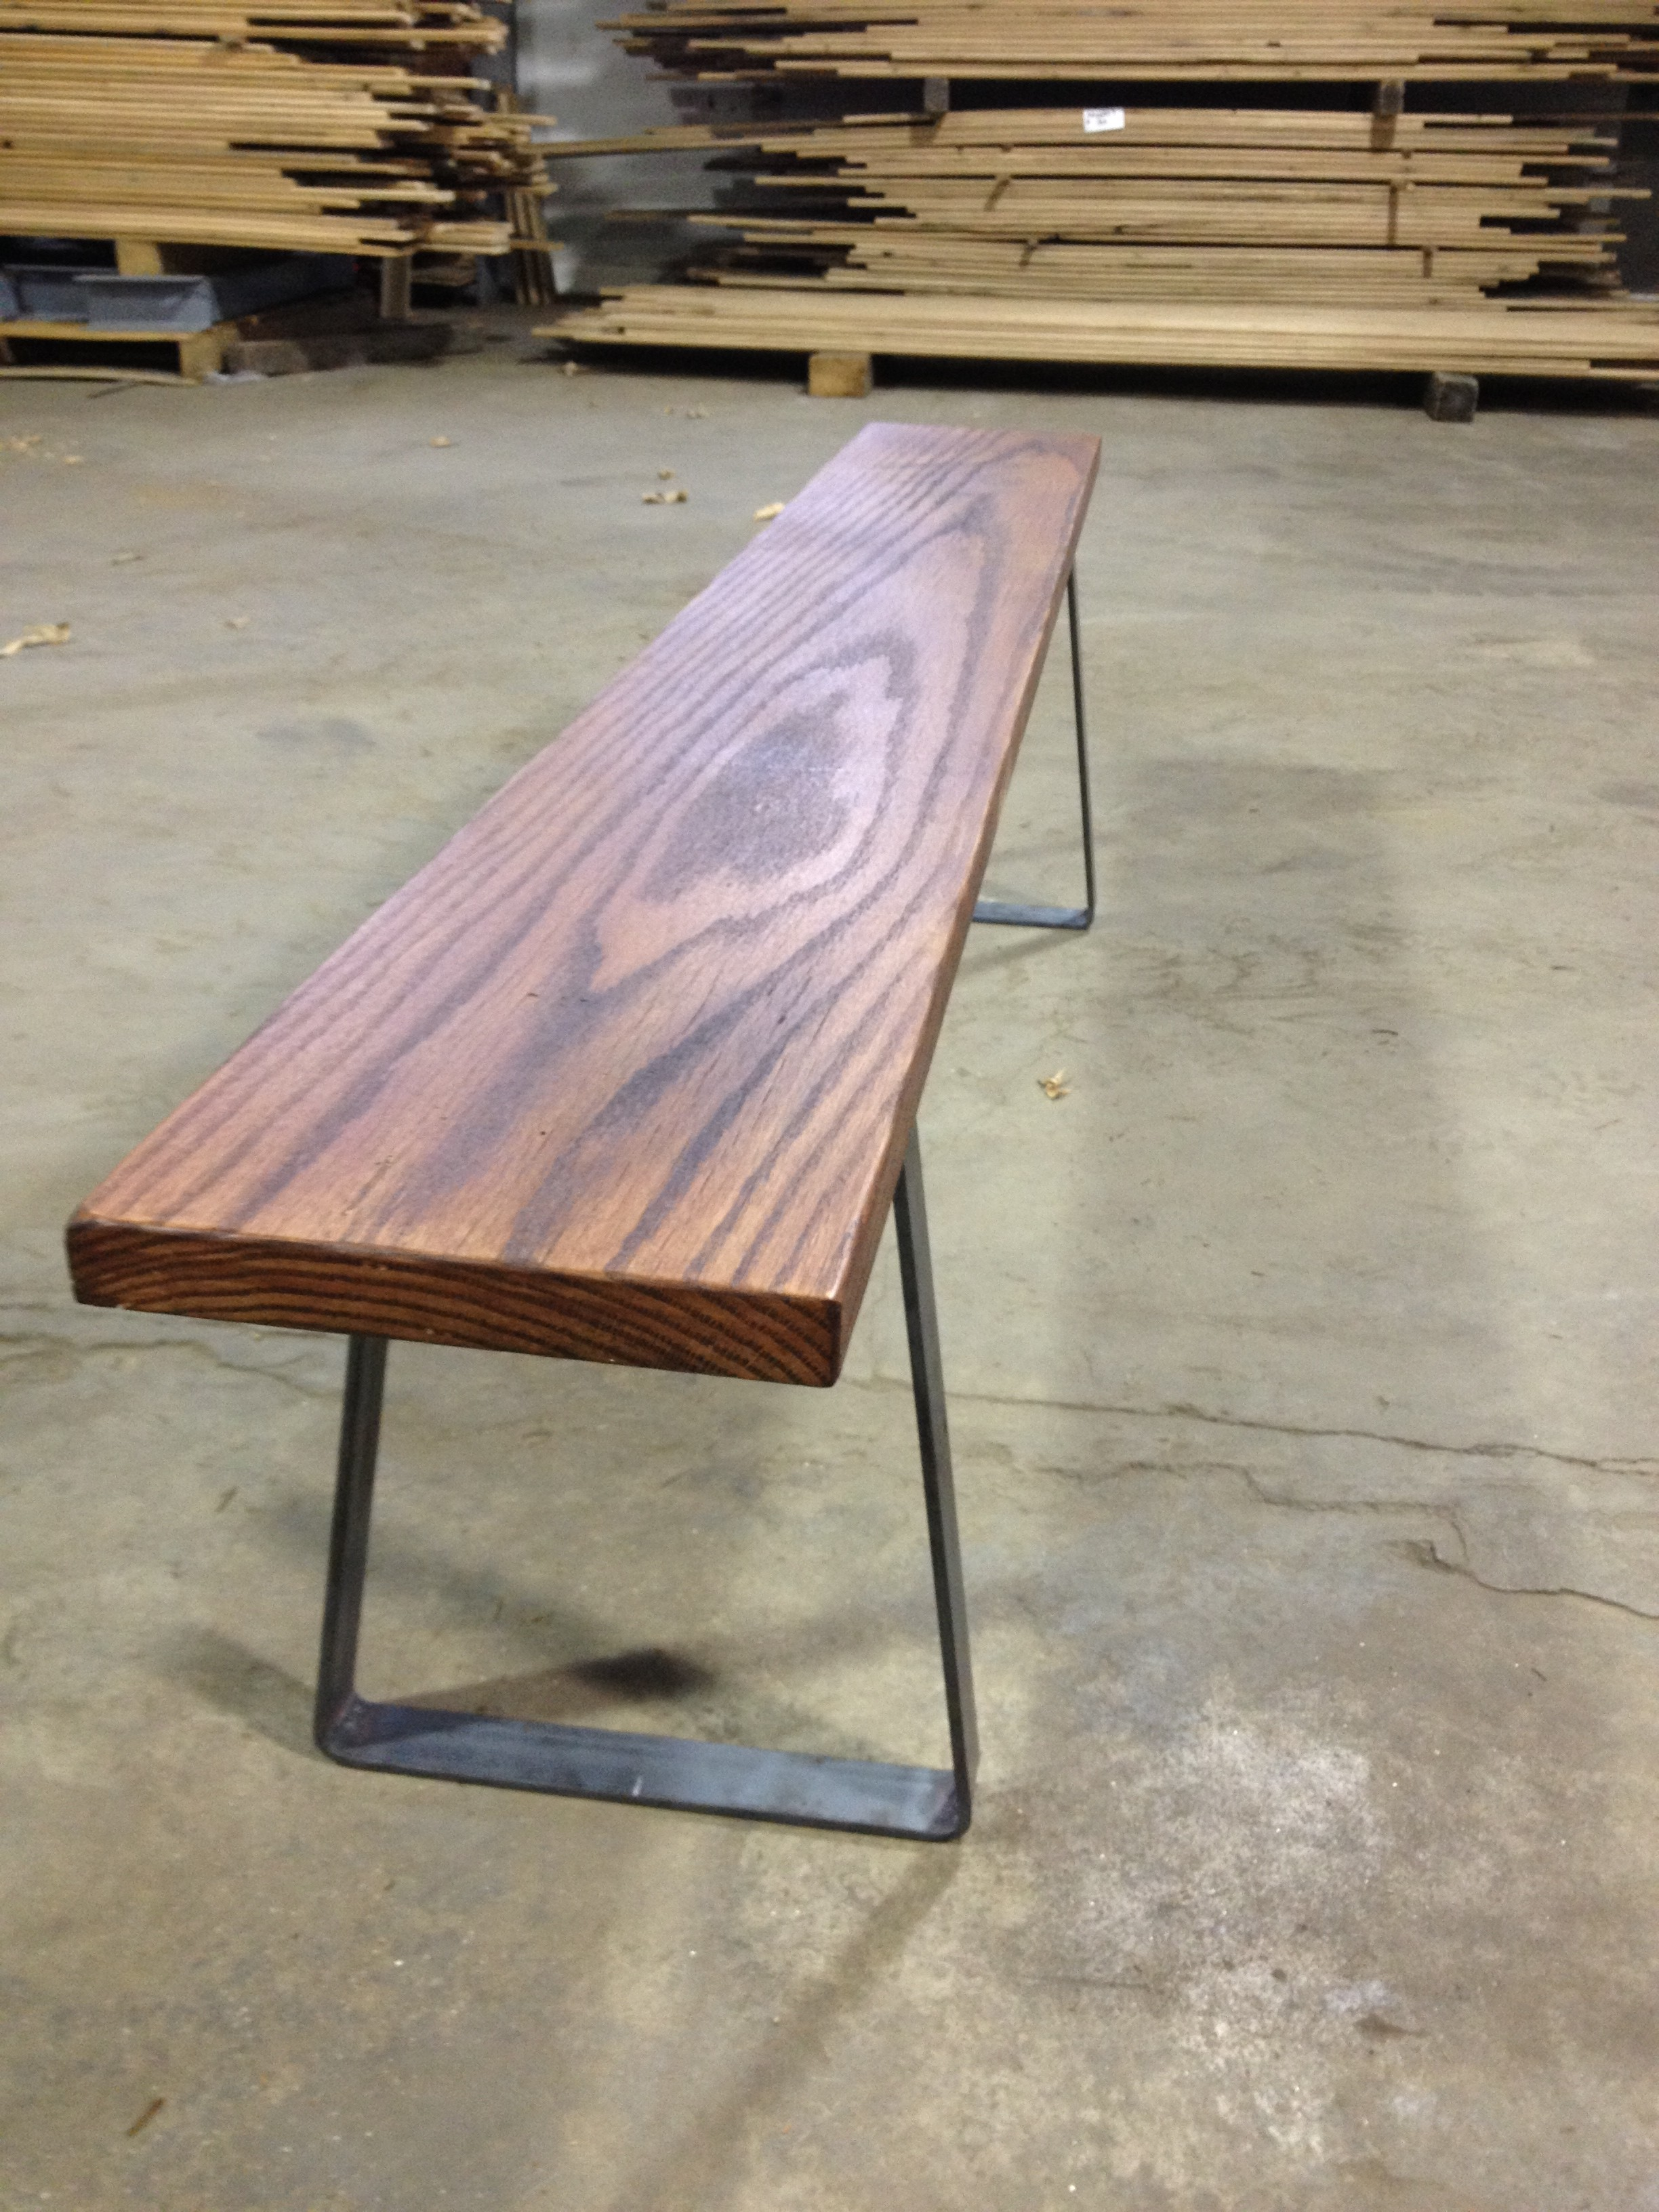 Custom Flat Bar Bench Legs For Tables And Benches